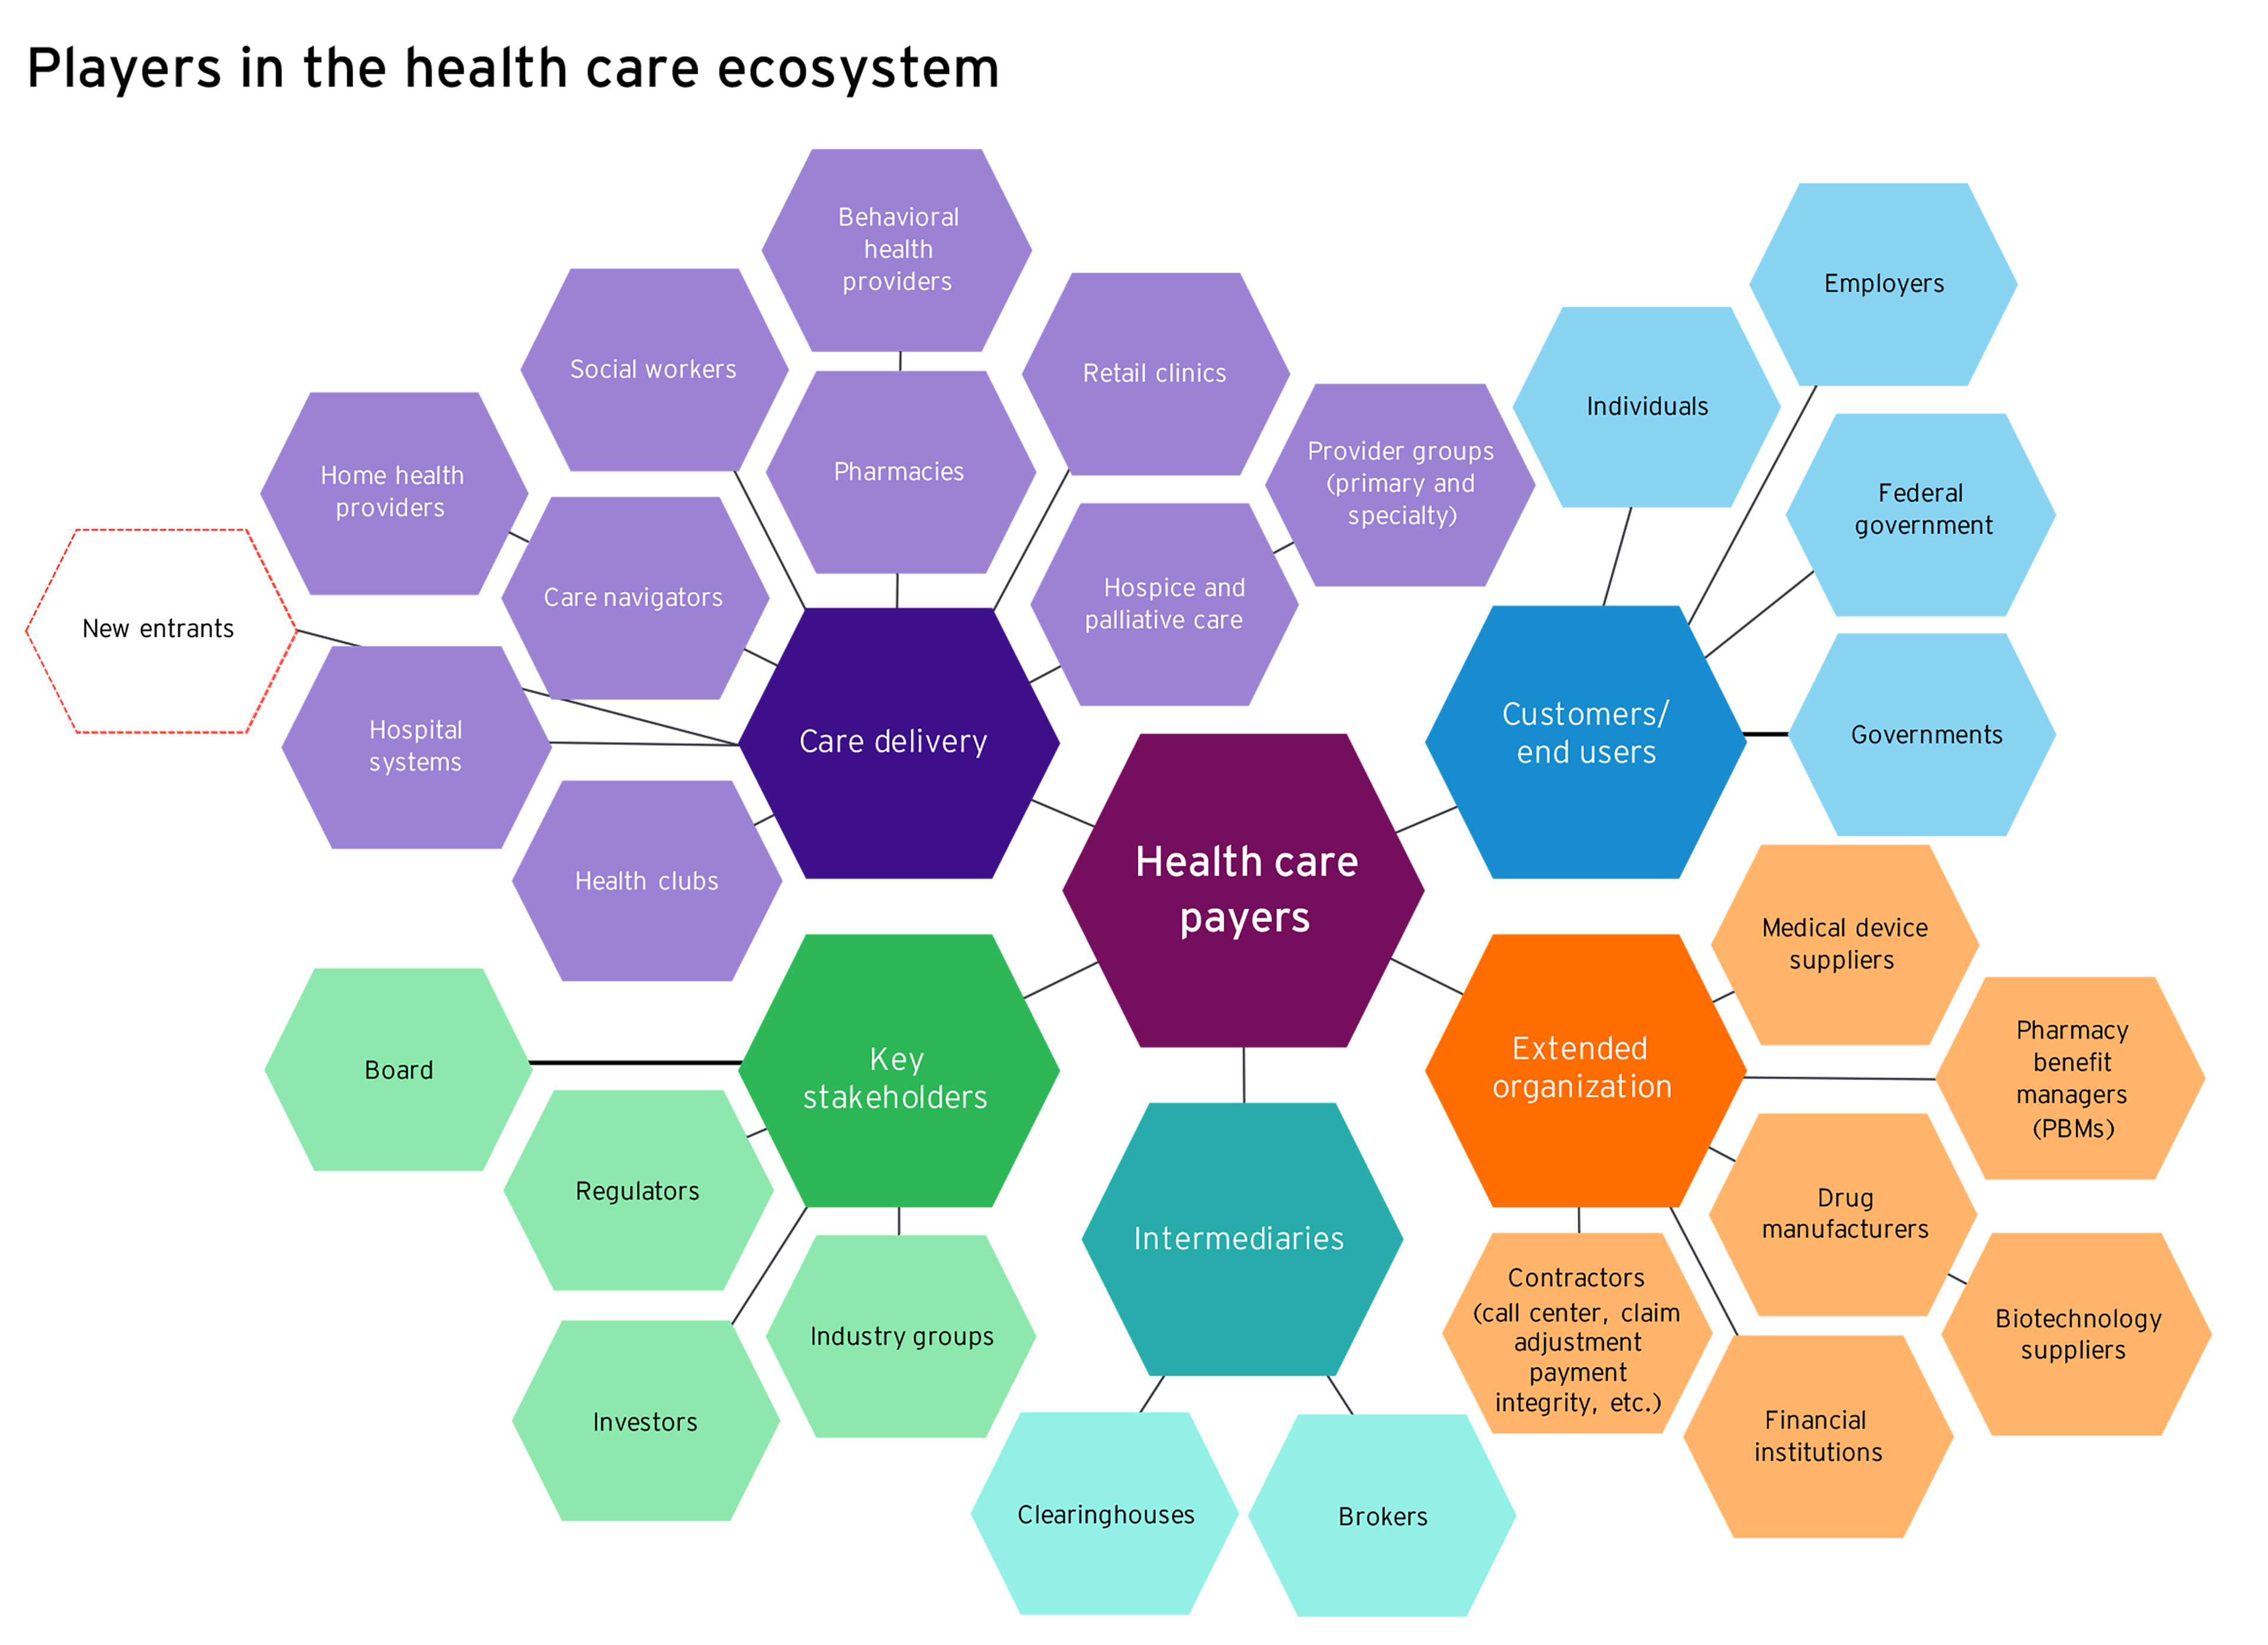 Players in the health care ecosystem